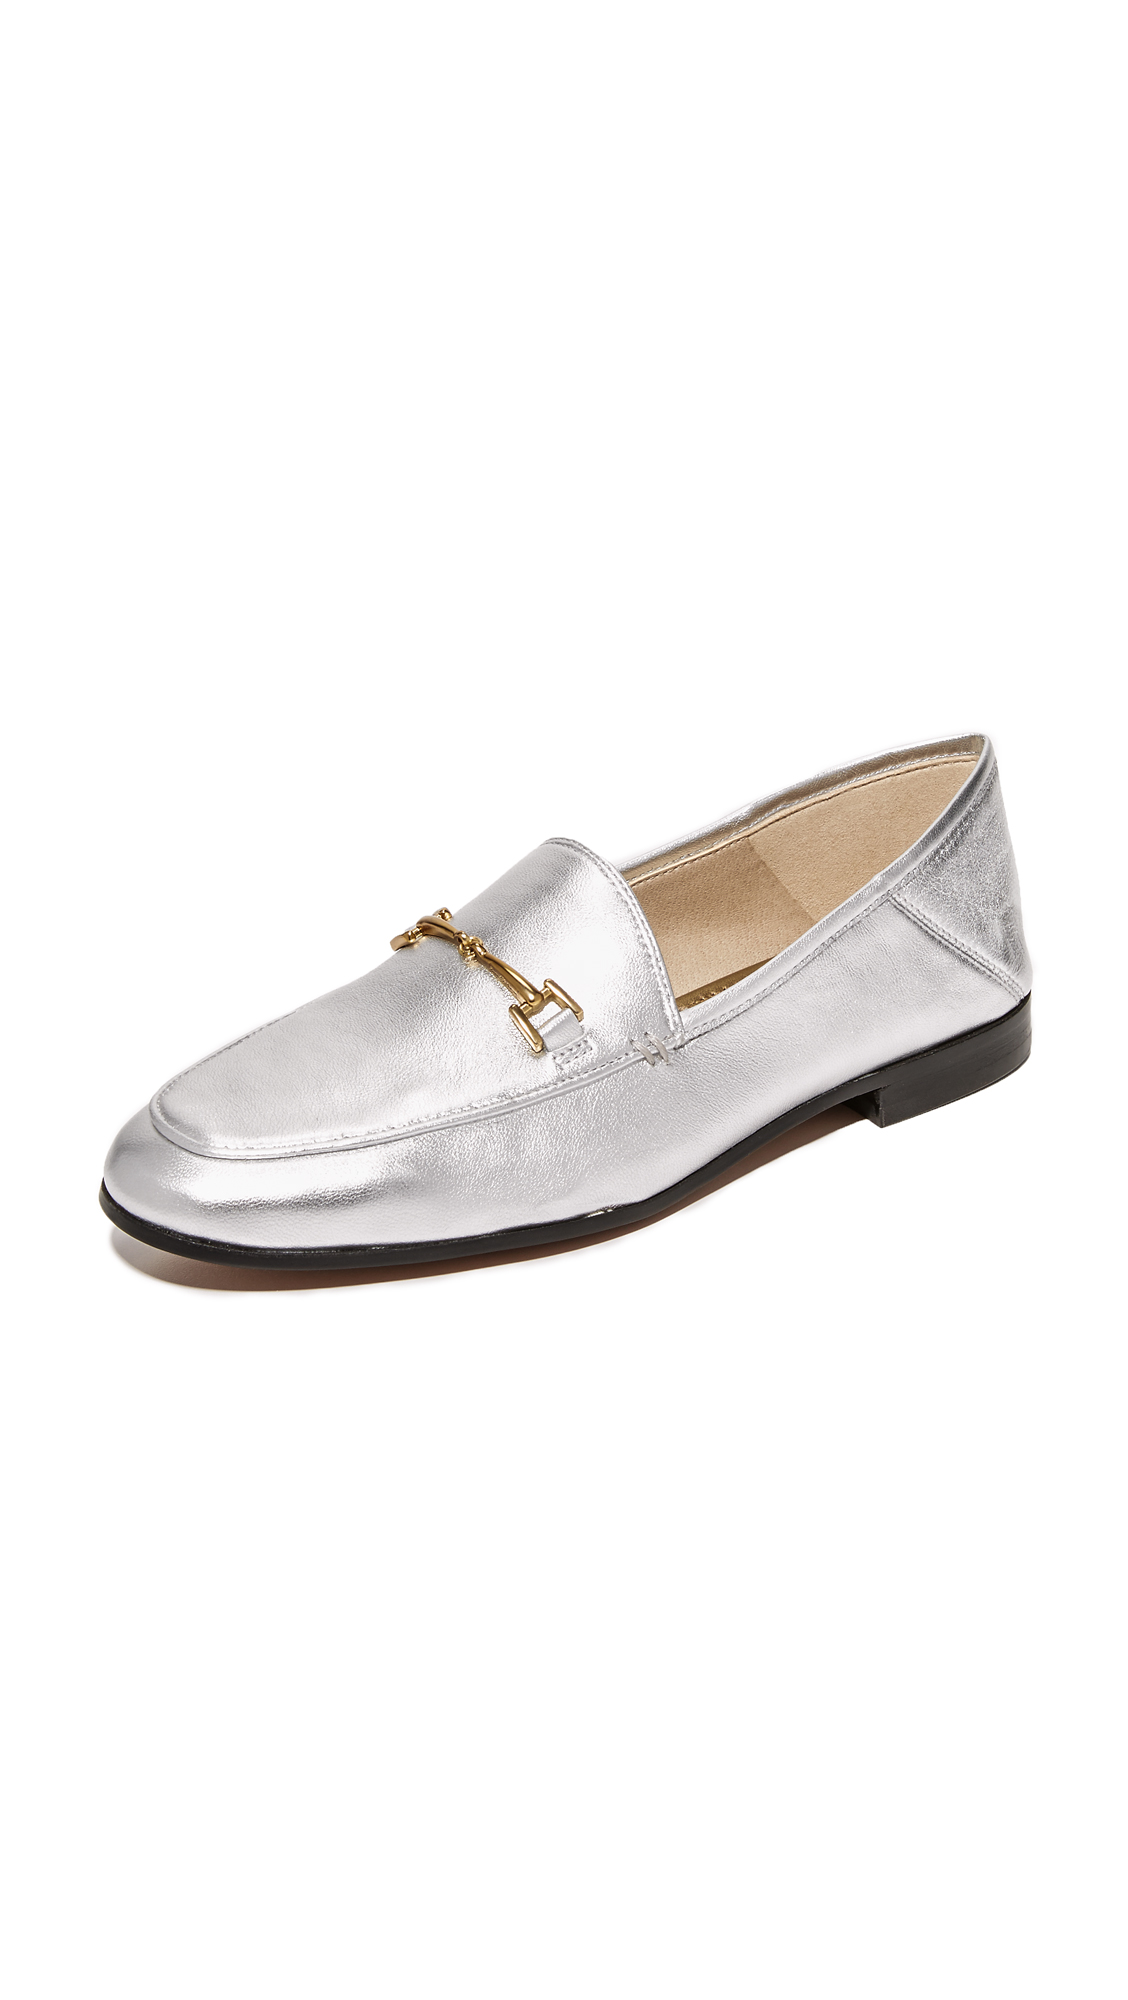 Sam Edelman Loraine Metallic Loafers - Soft Silver